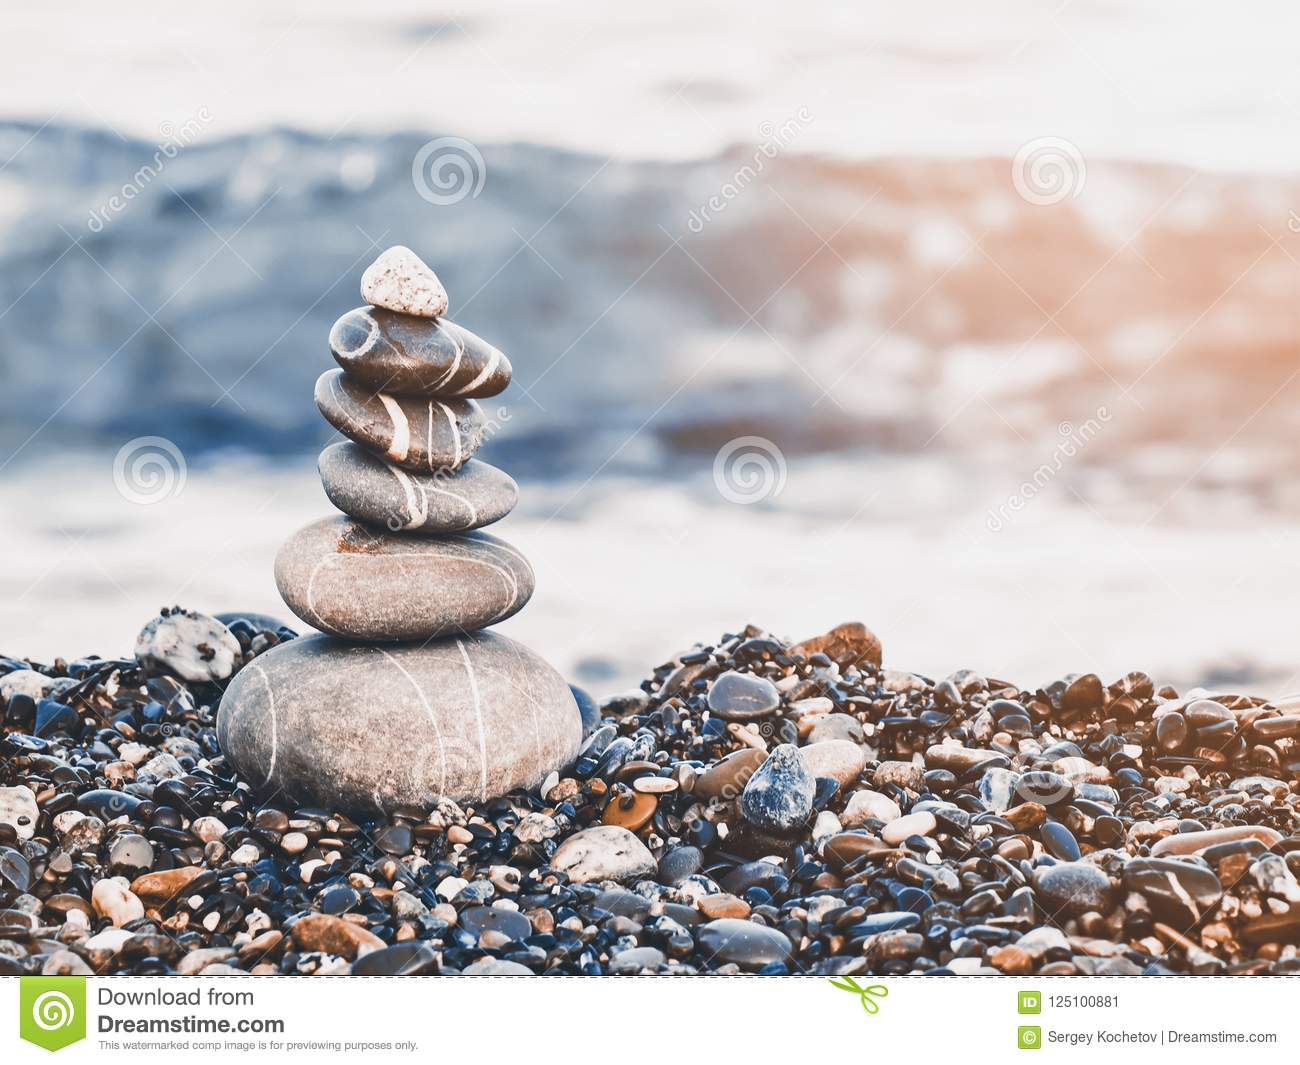 Pyramid of pebbles on the beach.Waves in background. Retro style.